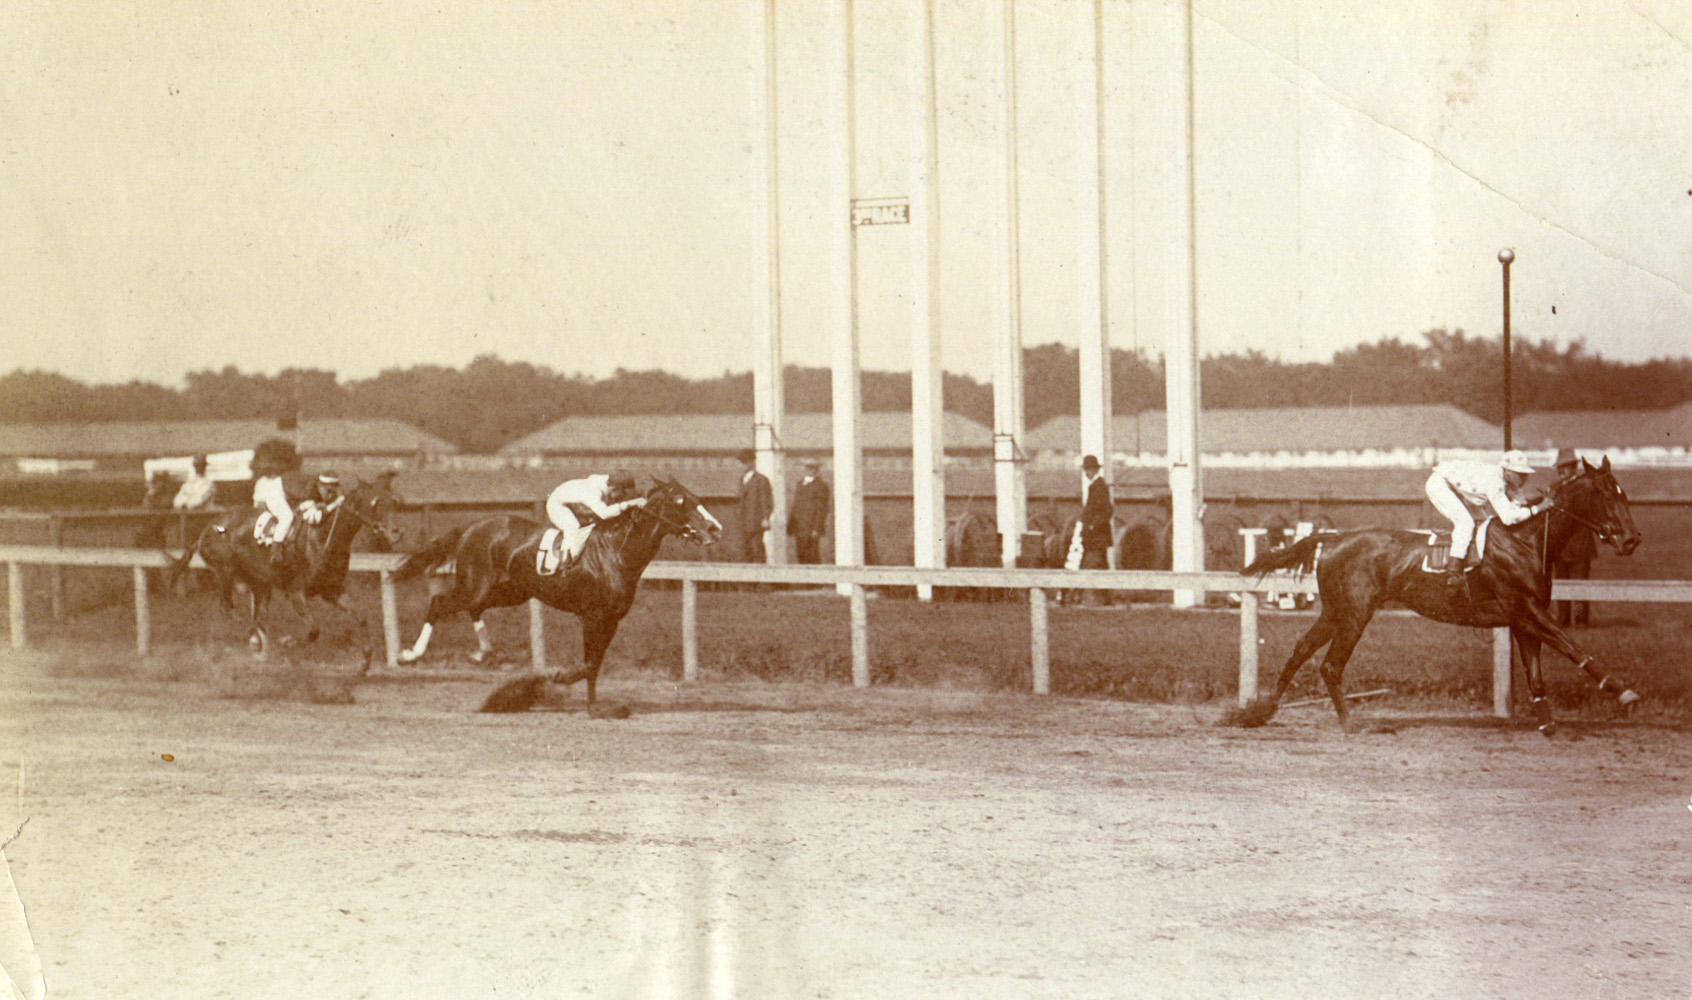 Maskette (Scoville up) winning the 1909 Gazelle at Gravesend (Museum Collection)